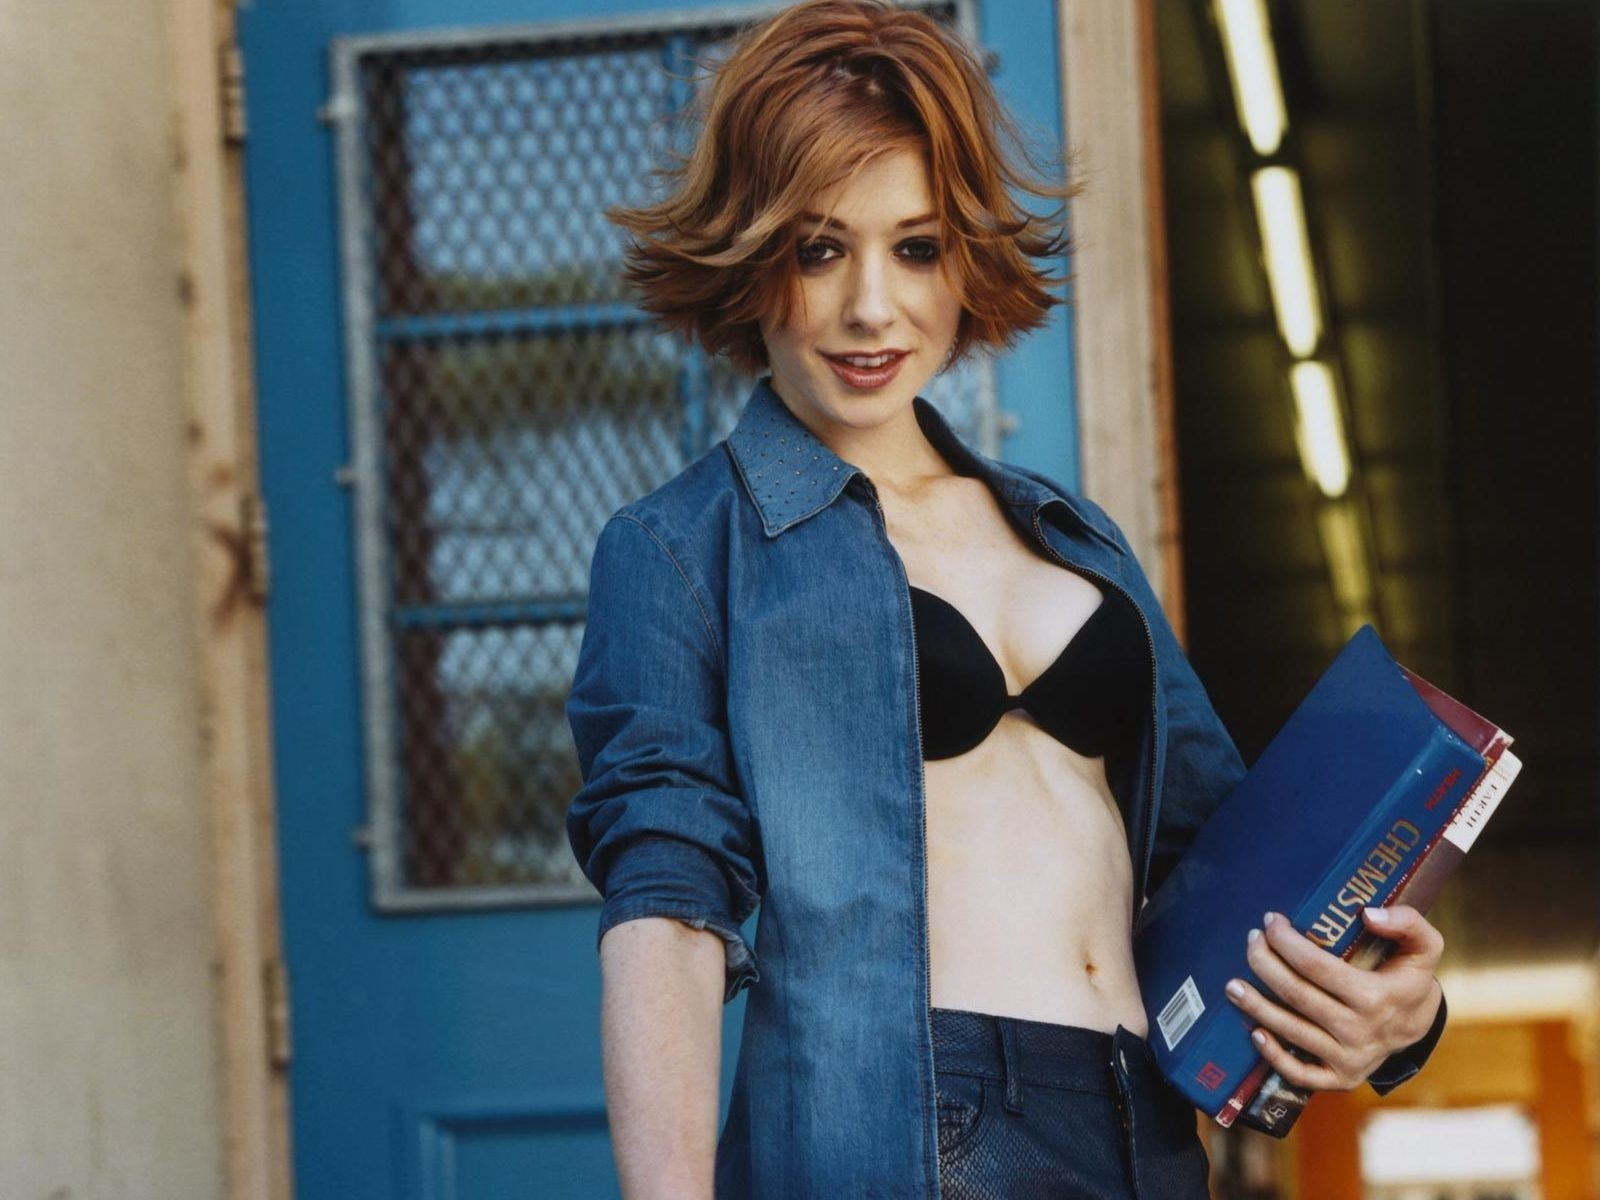 Wallpaper di Alyson Hannigan in versione 'sexy studentessa'